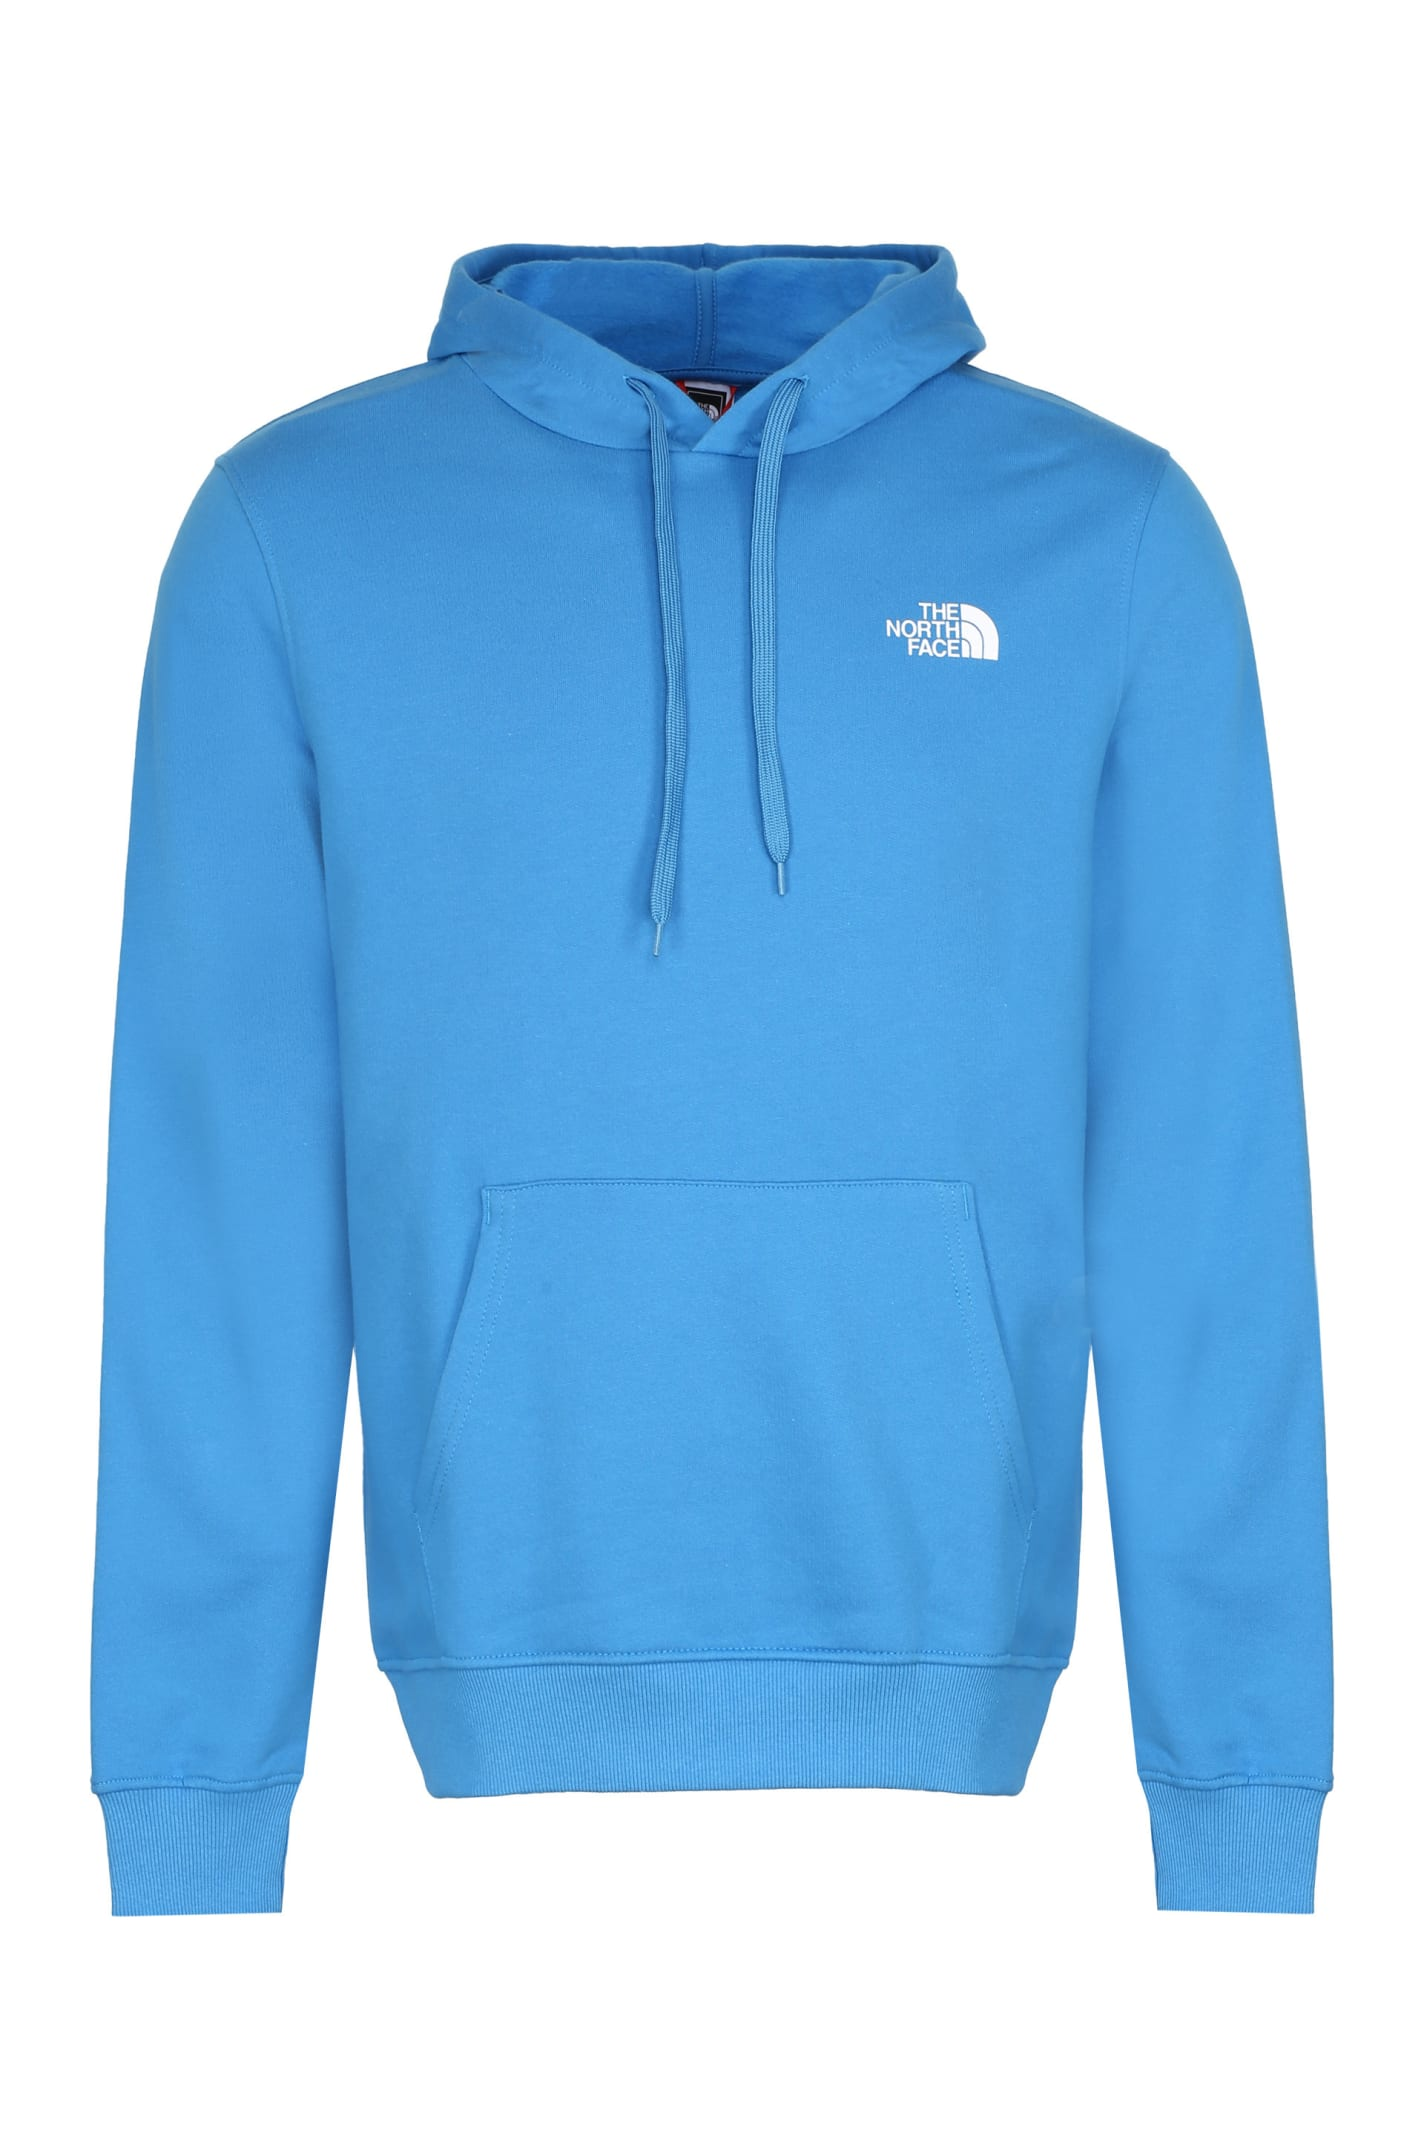 The North Face Cotton Hoodie